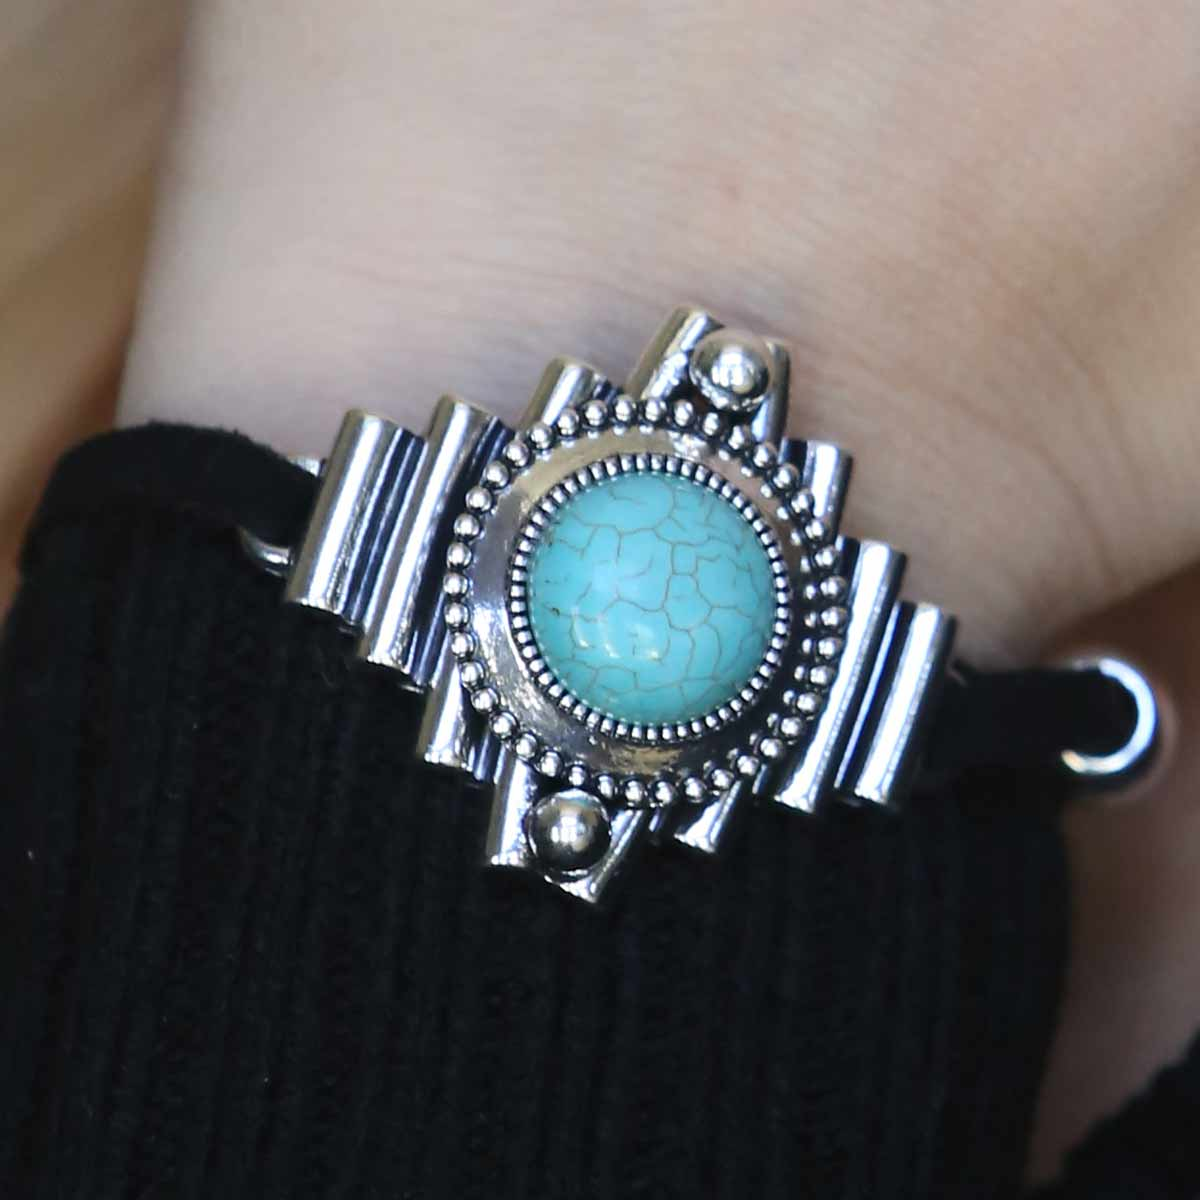 "SILVER AND TURQUOISE 1.5"" BRACELET 7""-8.5"" ON BLACK CORD 30sp"